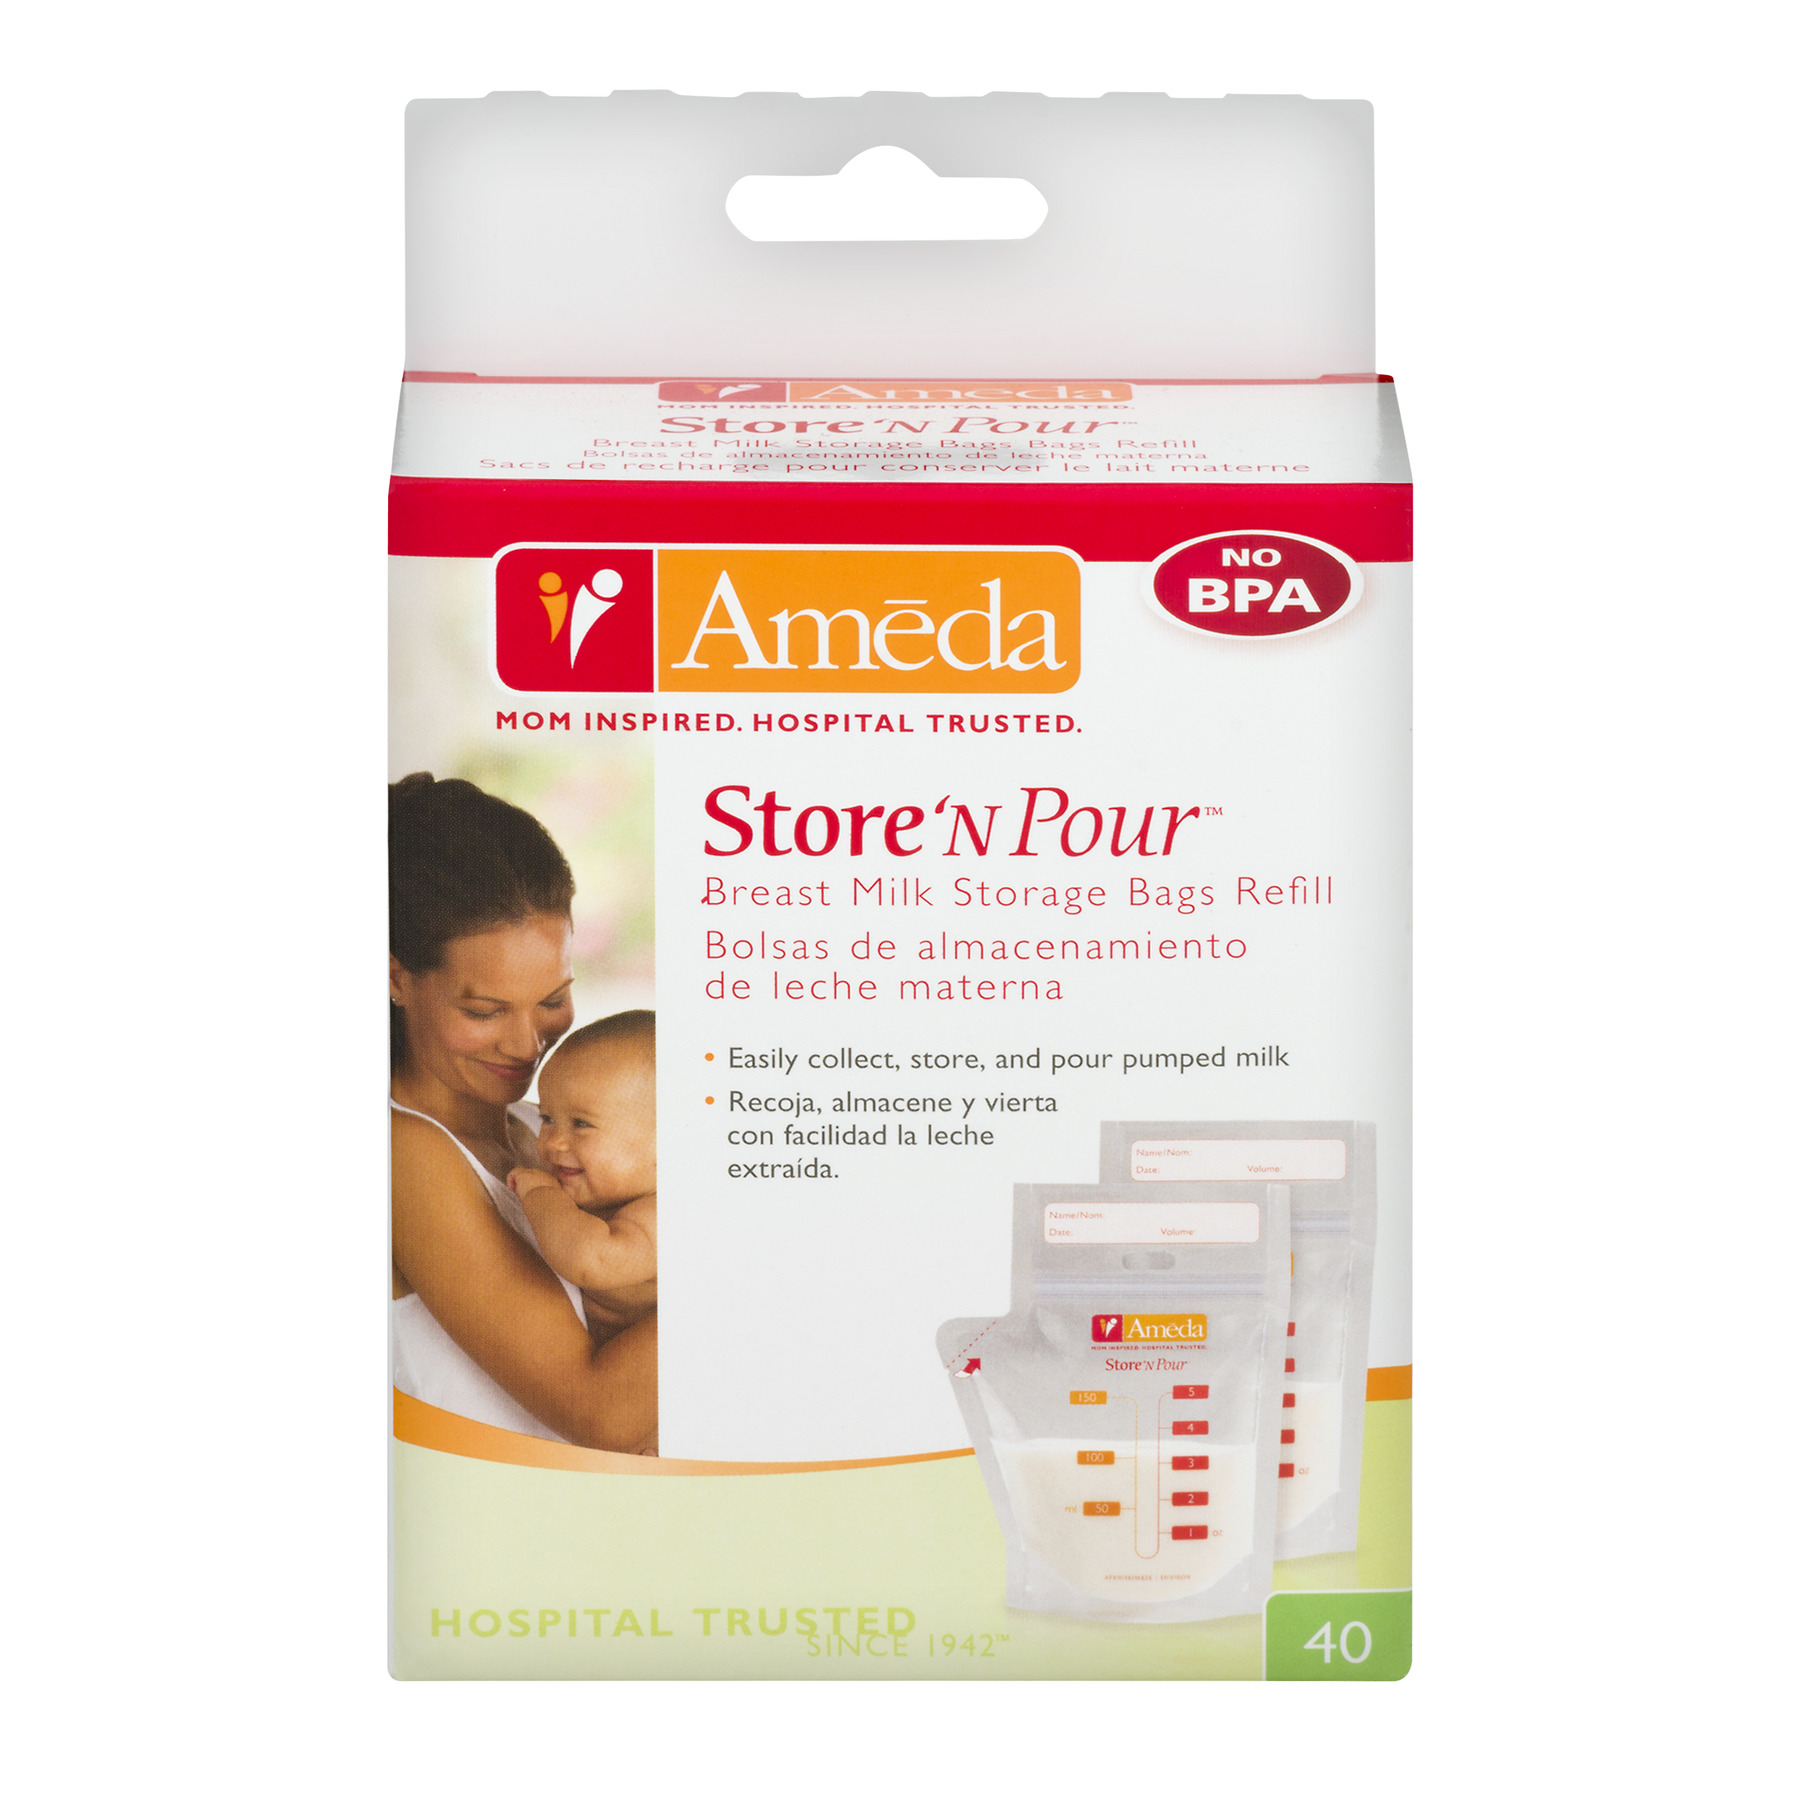 Ameda Store 'N Pour Breast Milk Storage Bags Refill - 40 CT40.0 CT